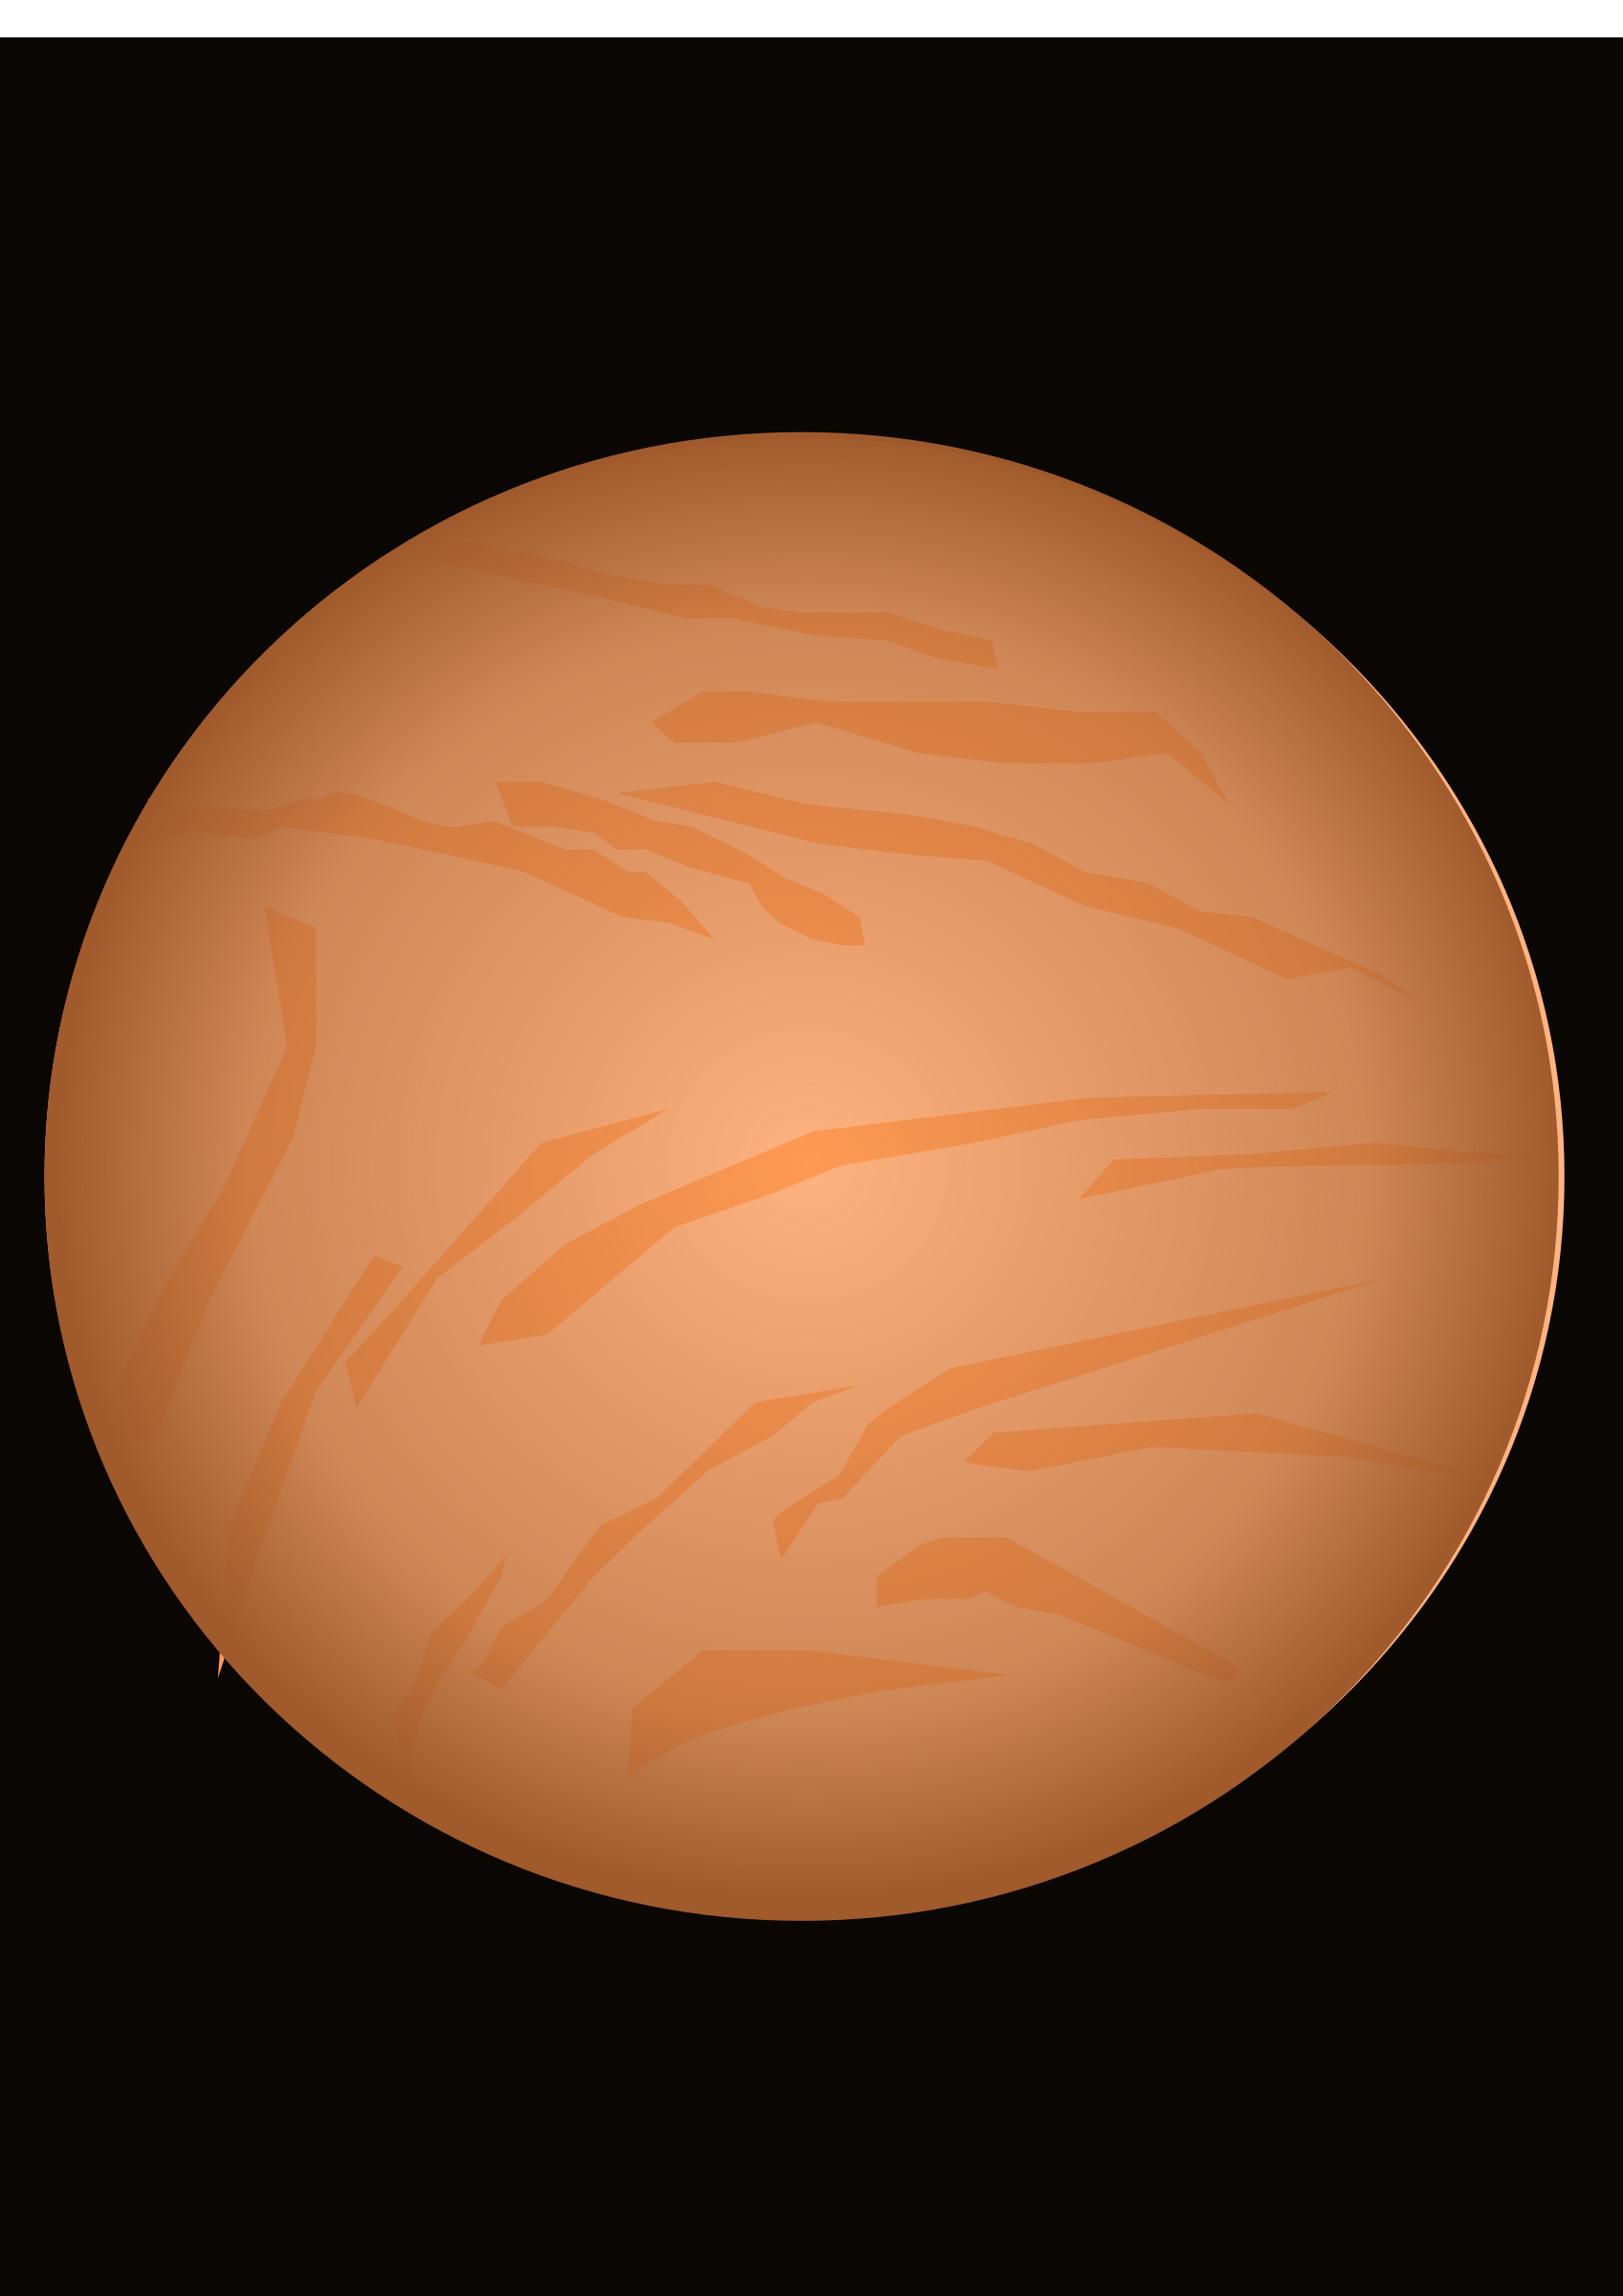 Planet Venus by jhonwask